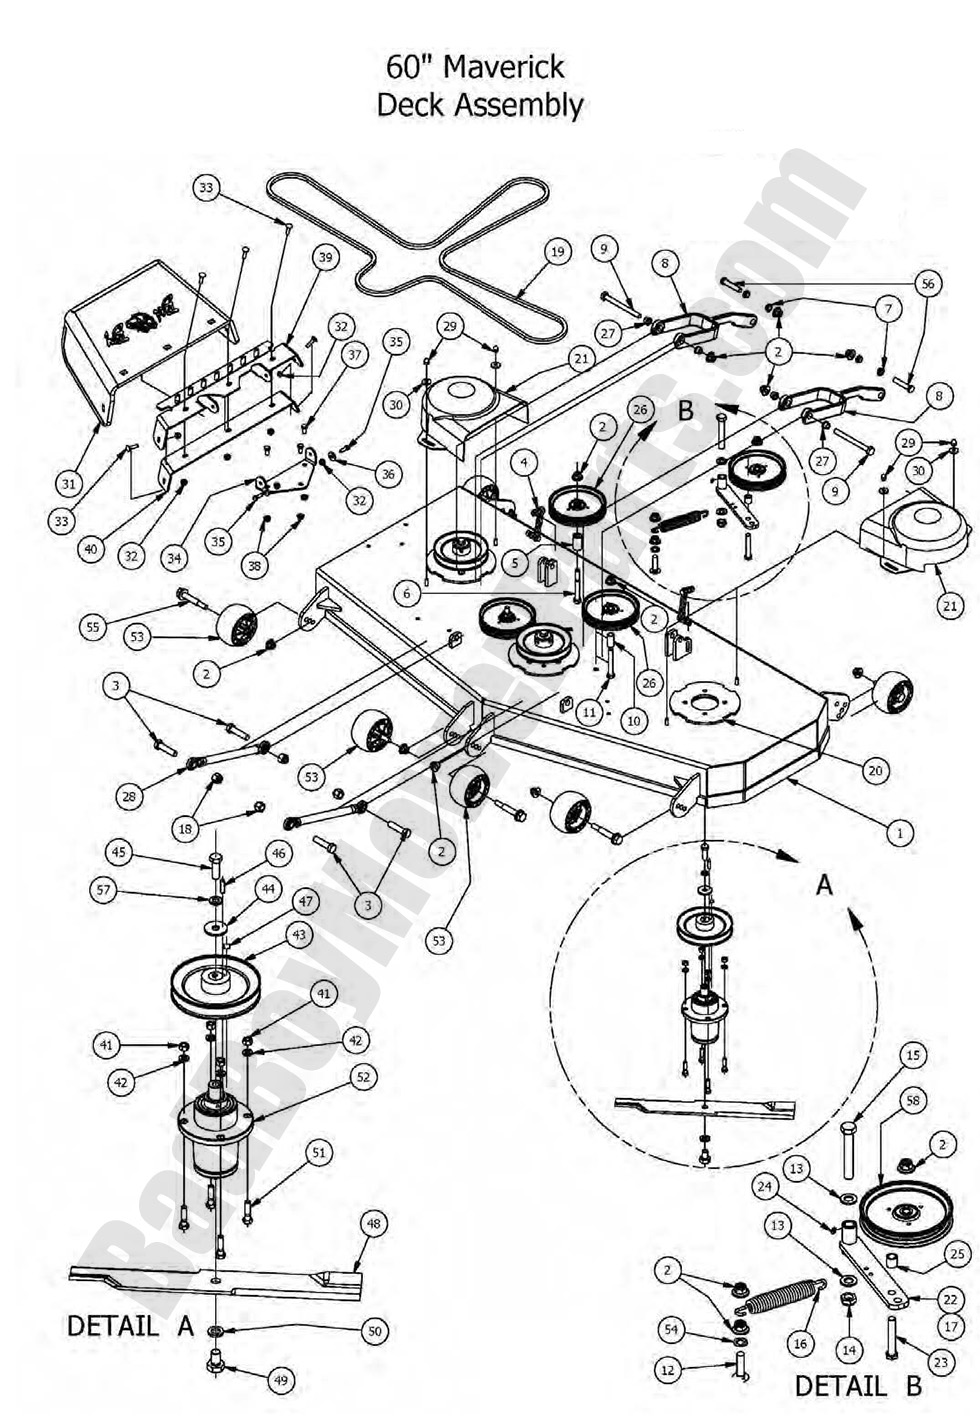 bad boy mowers wiring diagram    bad       boy       mower    parts 2016 maverick 60in deck assembly     bad       boy       mower    parts 2016 maverick 60in deck assembly